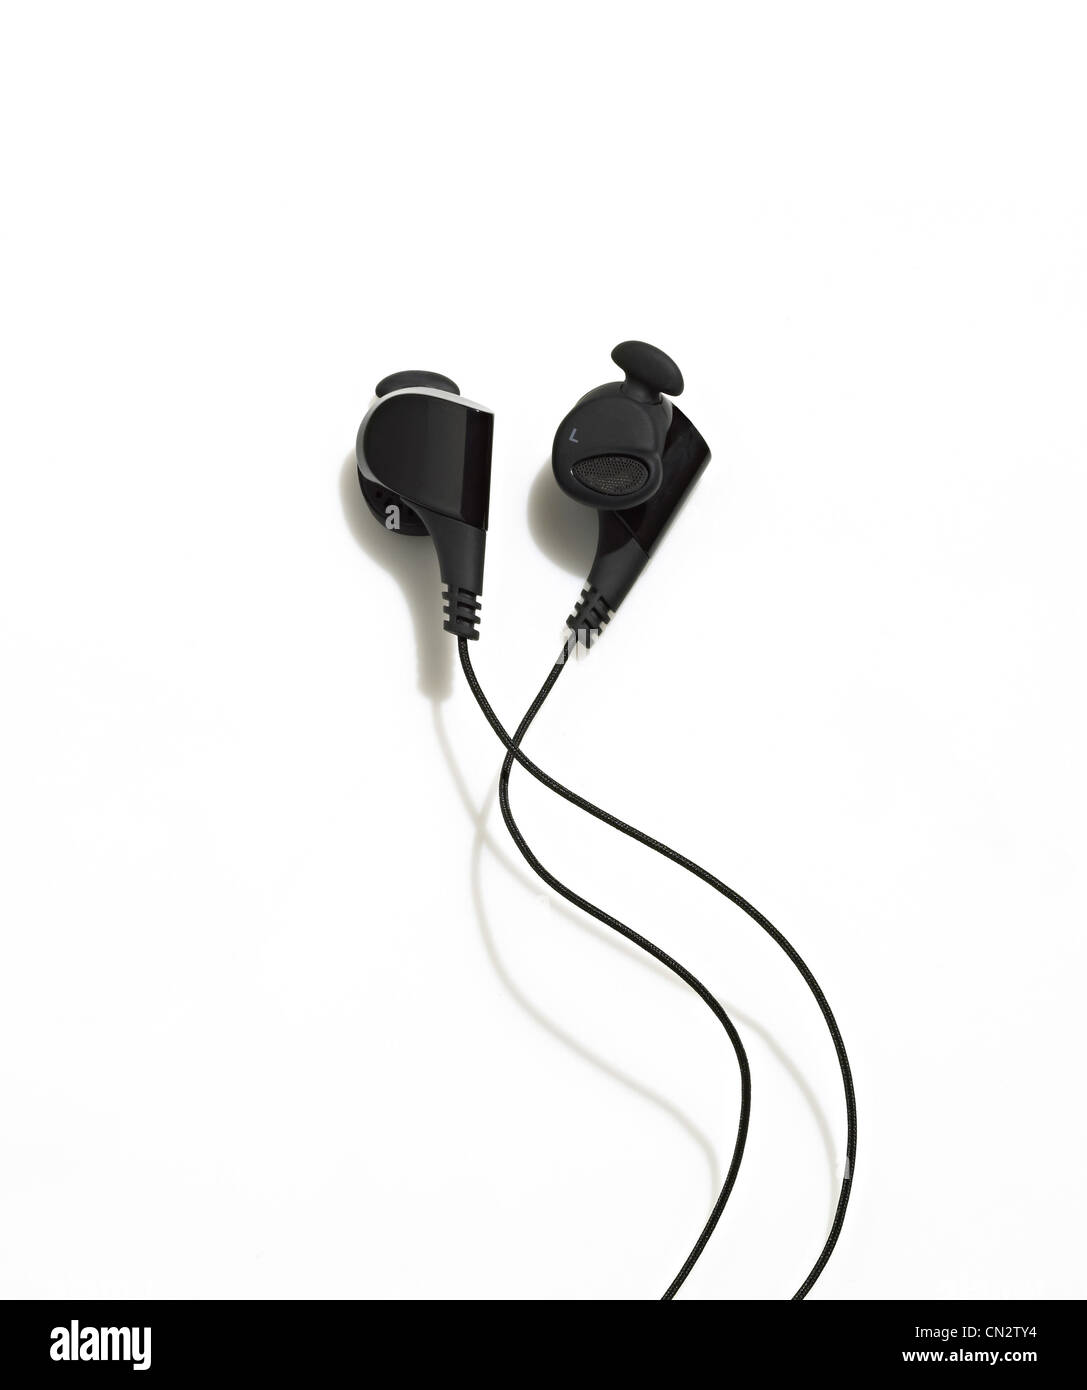 Earbuds - Stock Image